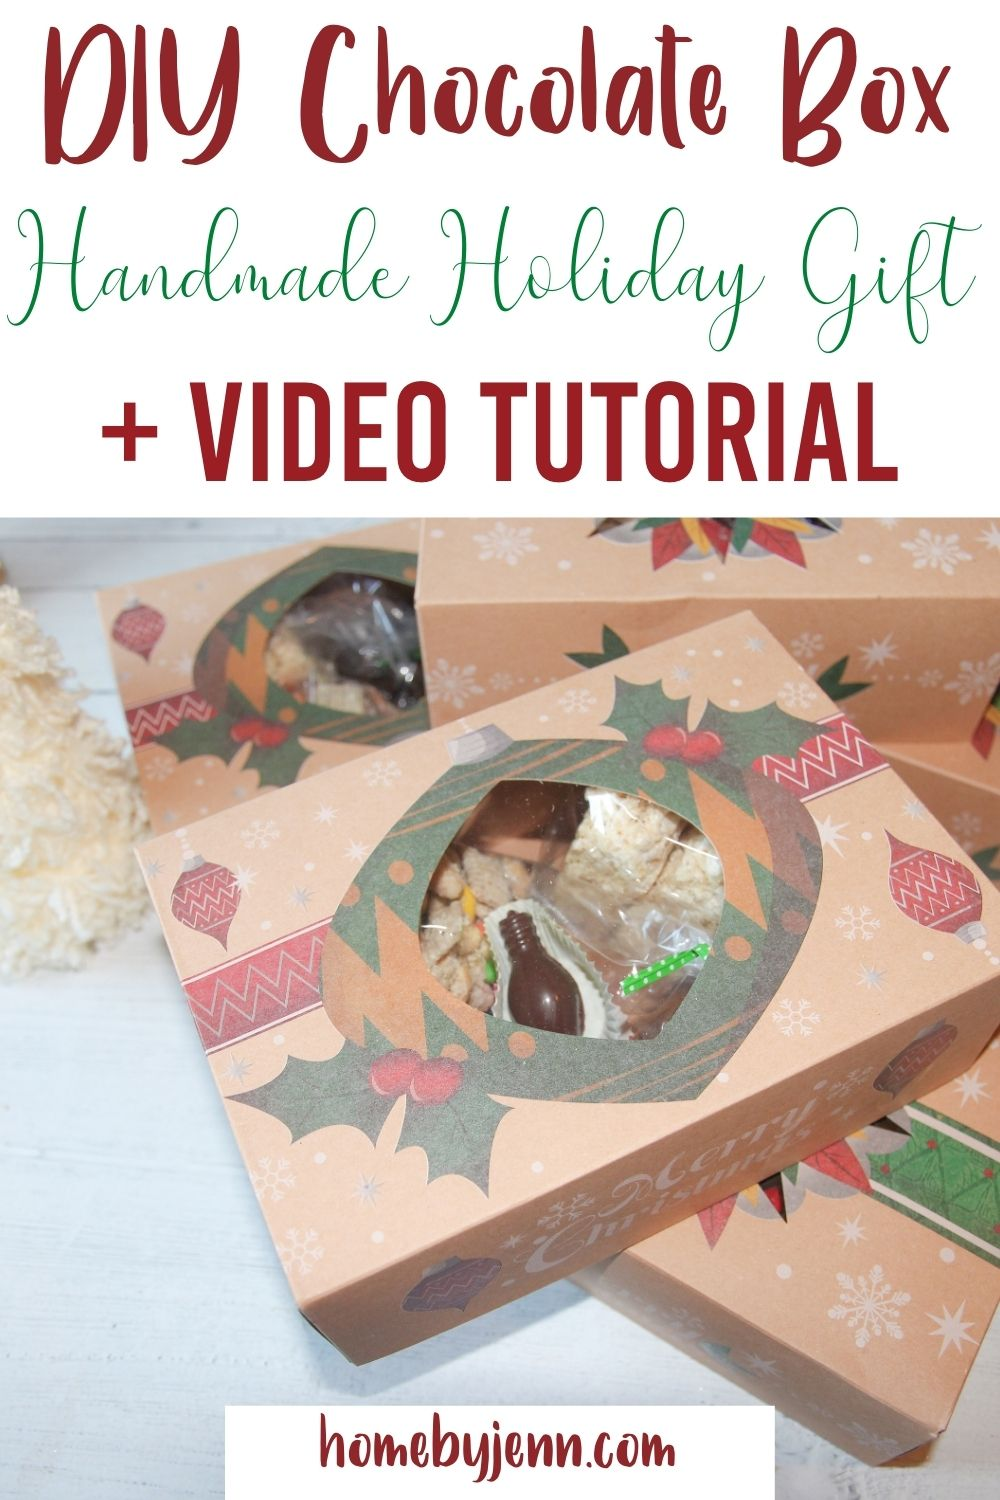 Make an impression on your friends and family by making your own DIY Chocolate Box. This handmade box of chocolates will be perfect to share as gifts this holiday season. The chocolate box is fully customizable allowing you to come up with your own sweet surprises. via @homebyjenn